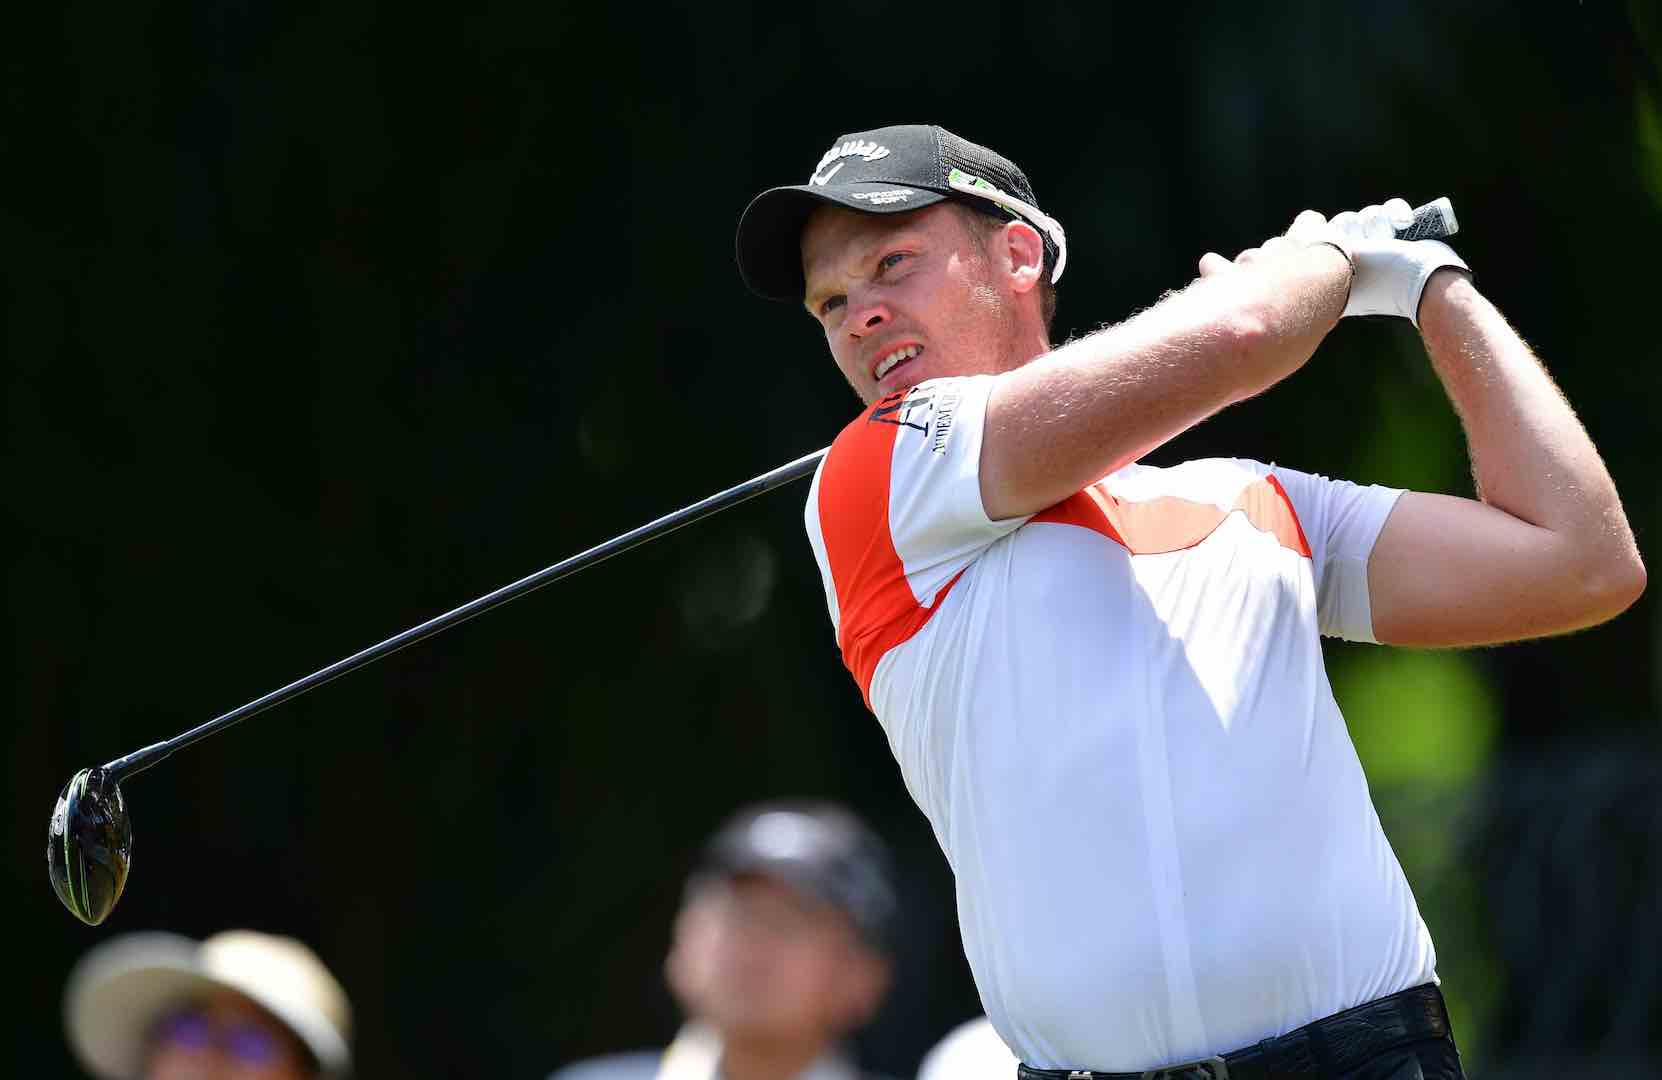 Danny Willet takes lead in Malaysia